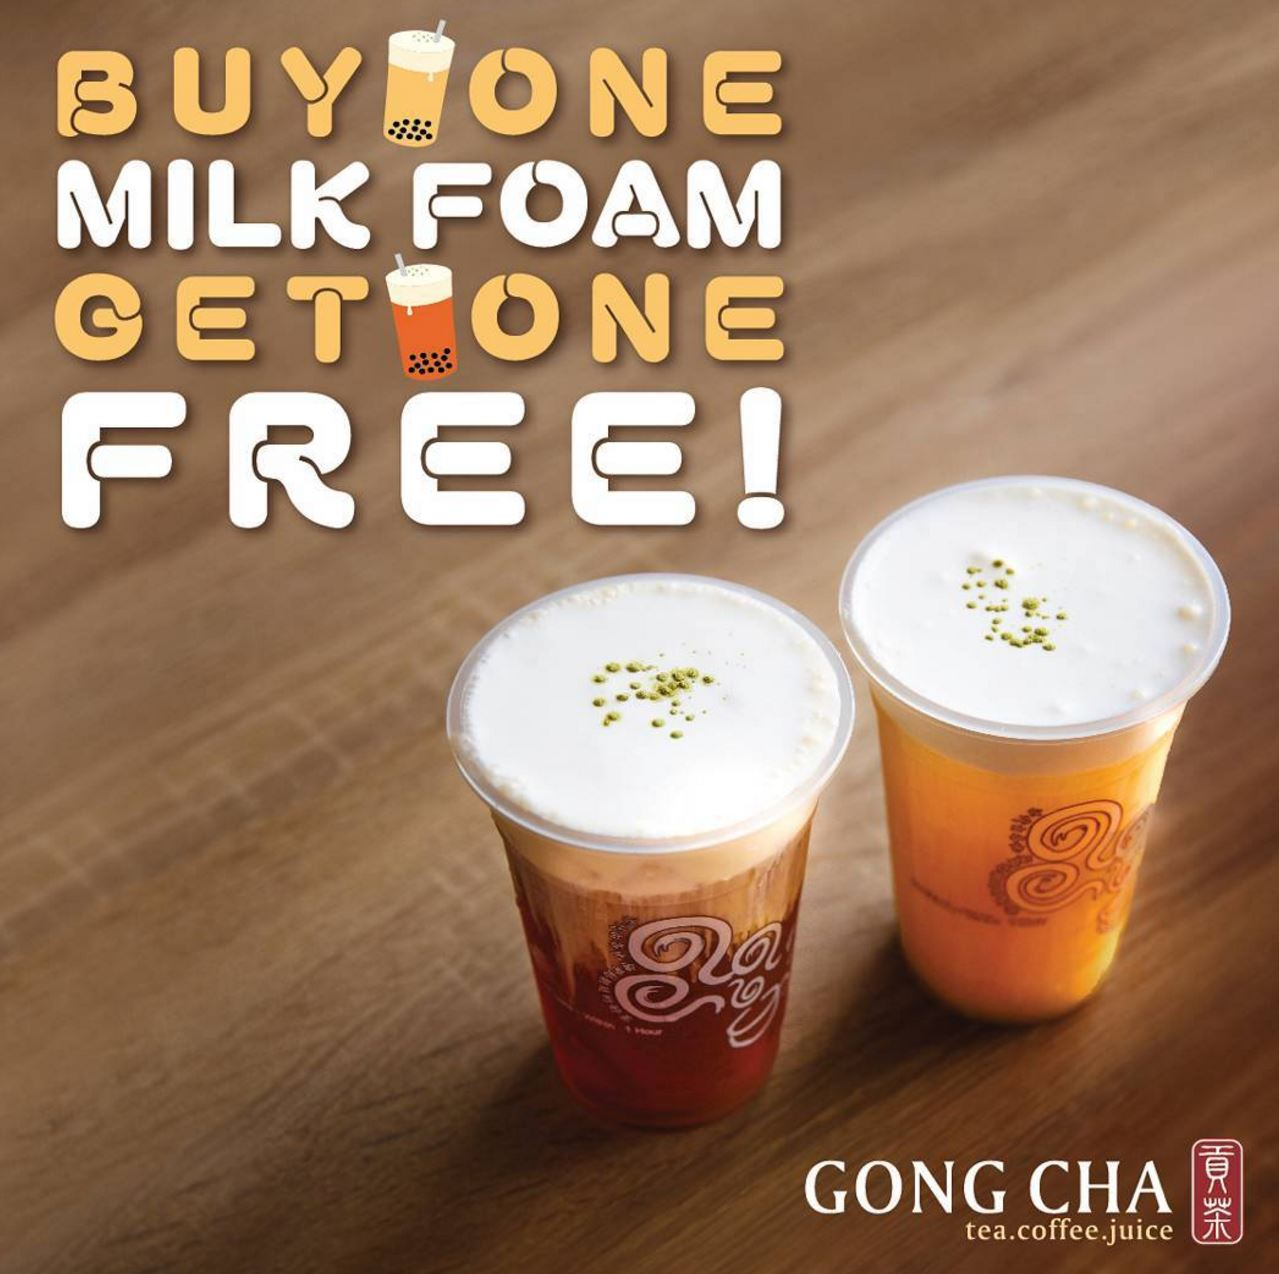 Mar. 25 - 26 | Gong Cha Celebrates Grand Opening In Buena Park With Bogo Free Deals